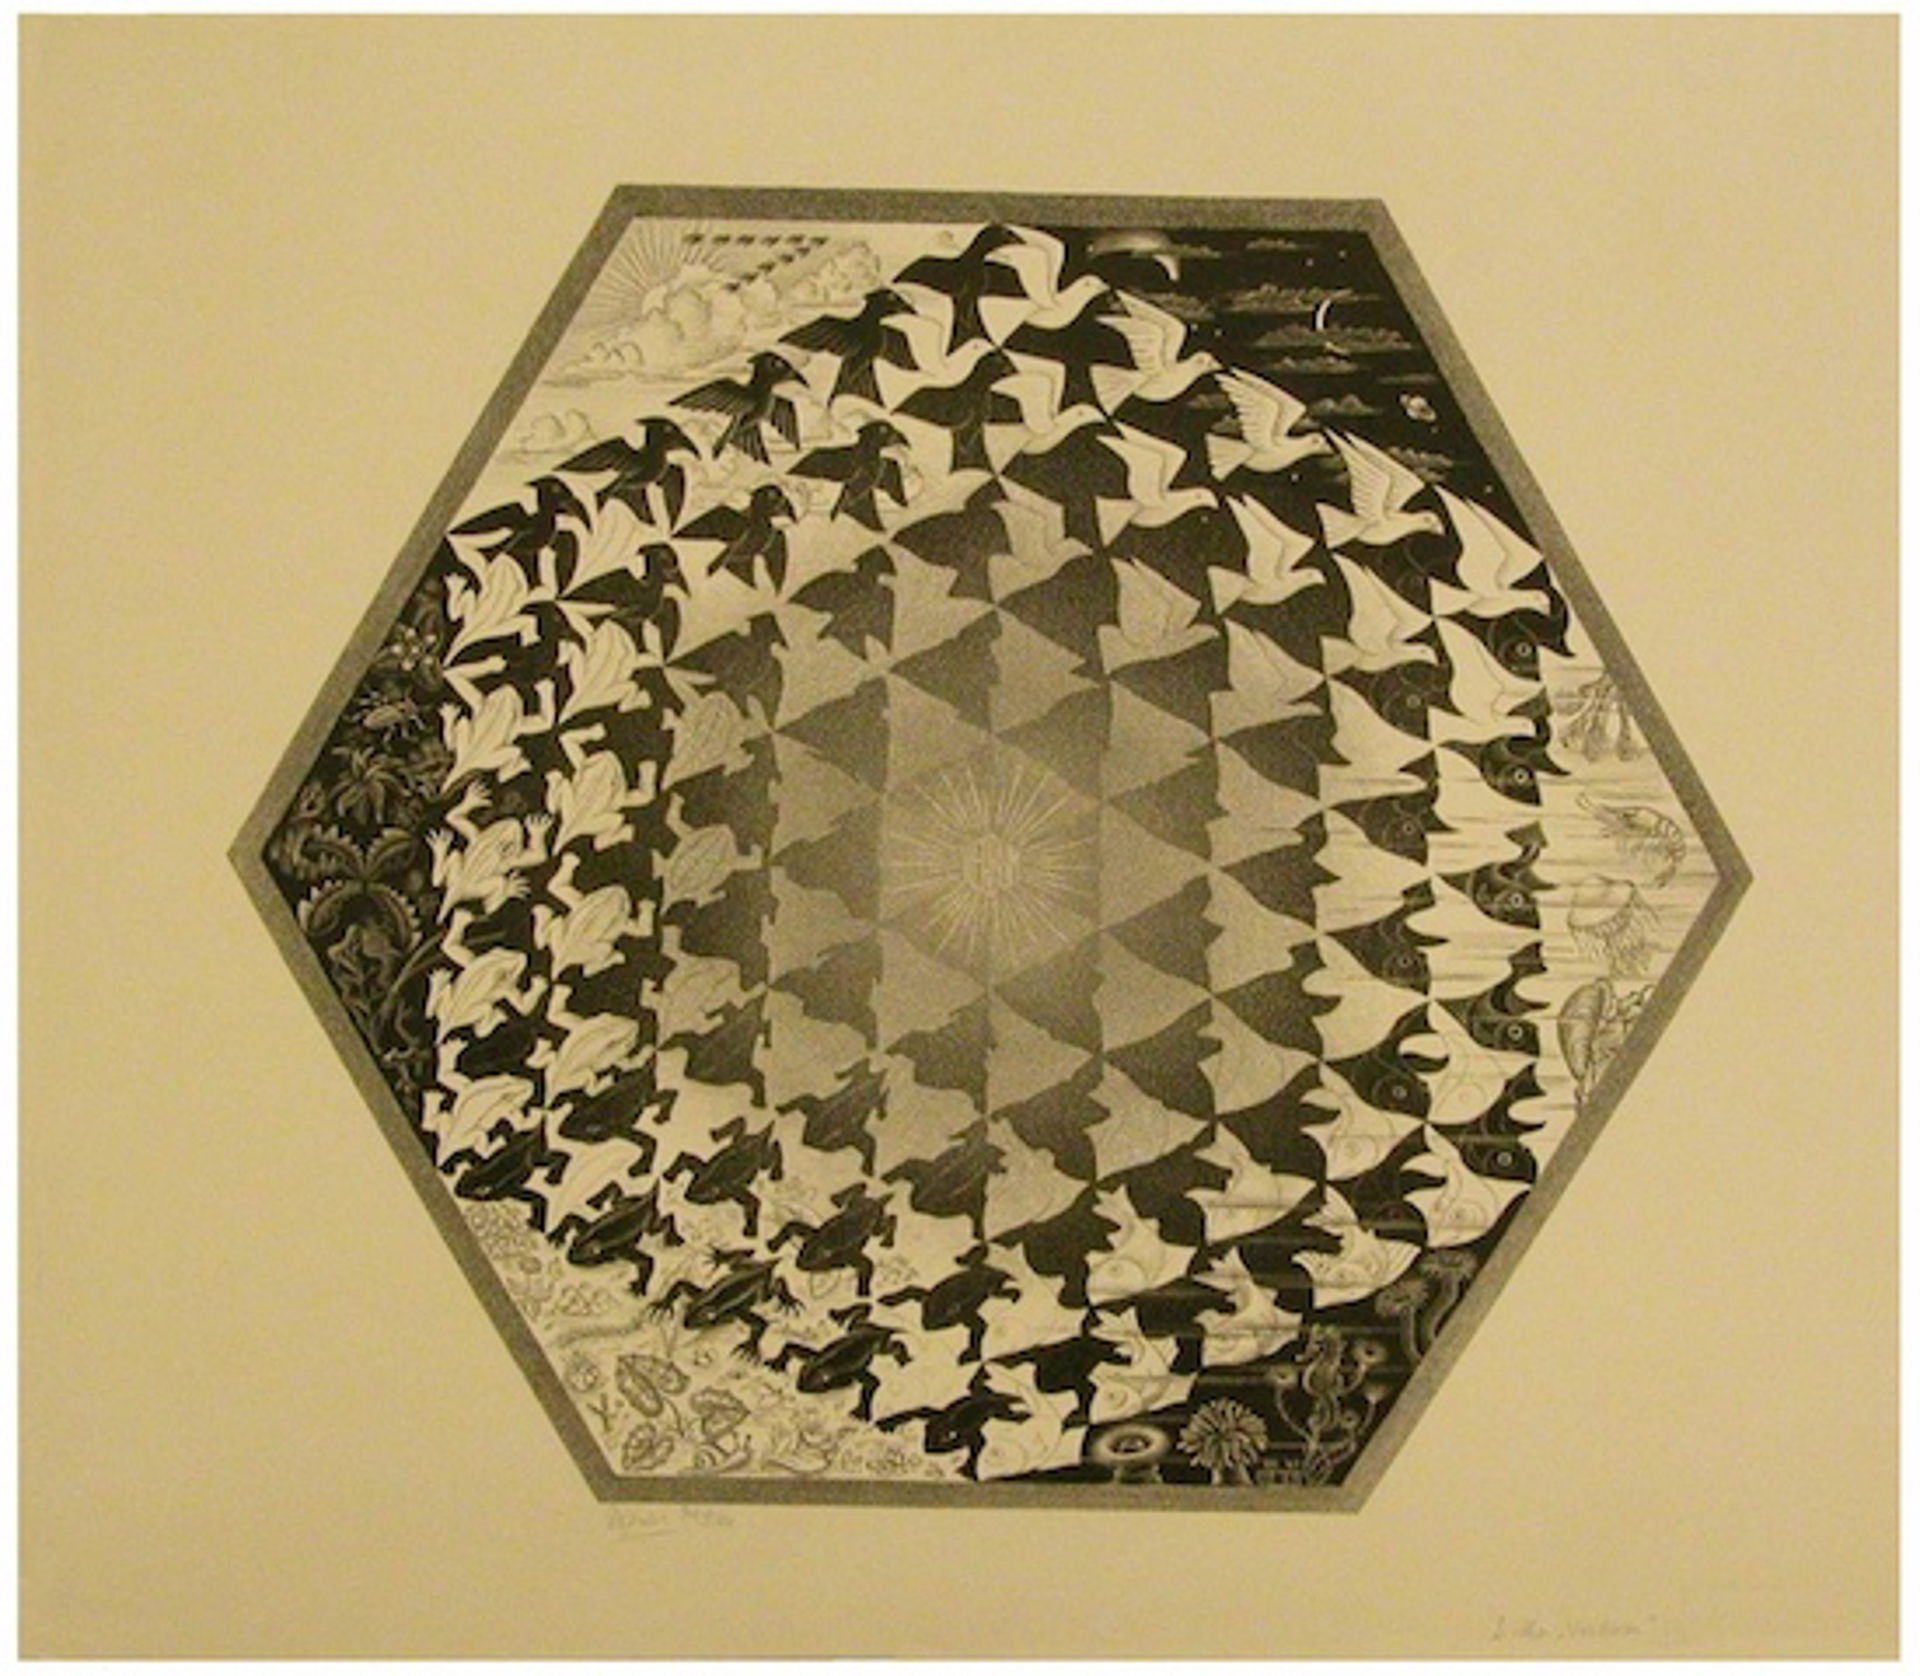 Verbum (Earth, Sky and Water) by M.C. Escher